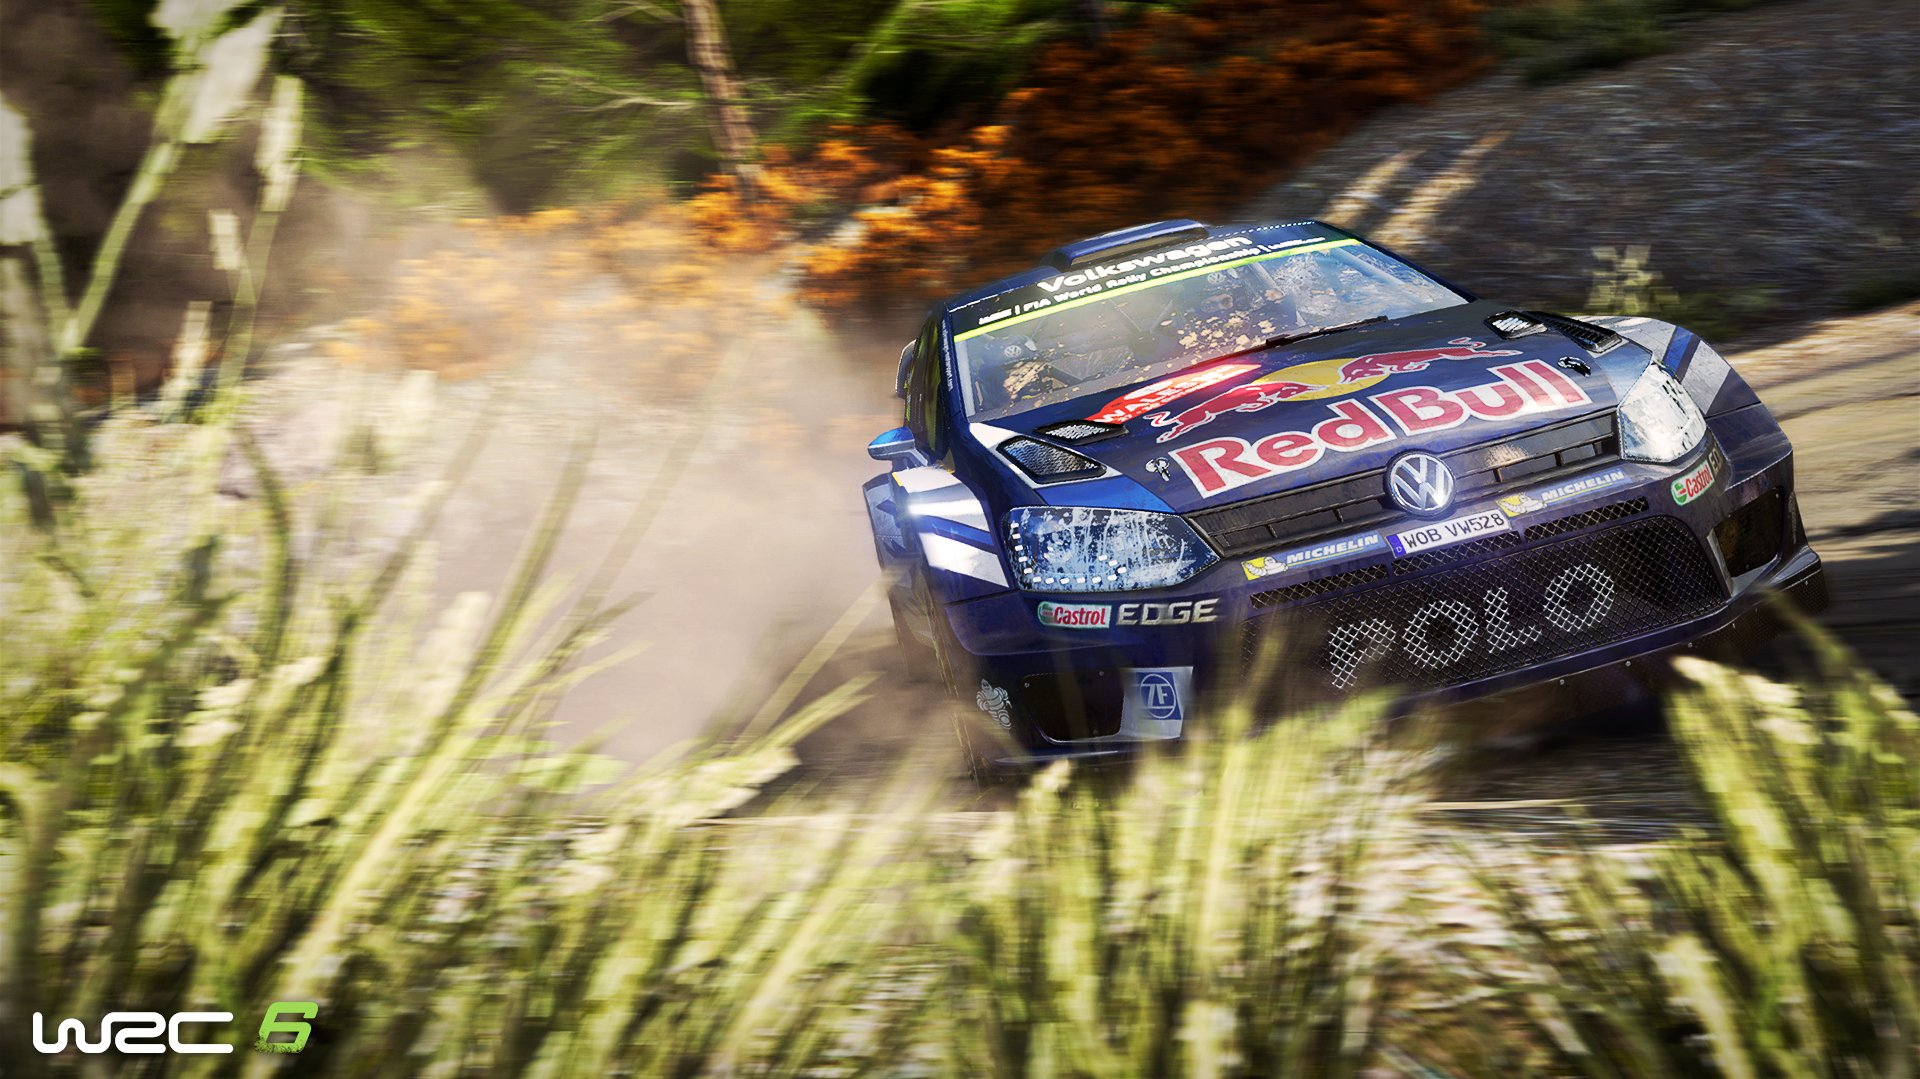 WRC 6 Volkswagen Polo screenshot